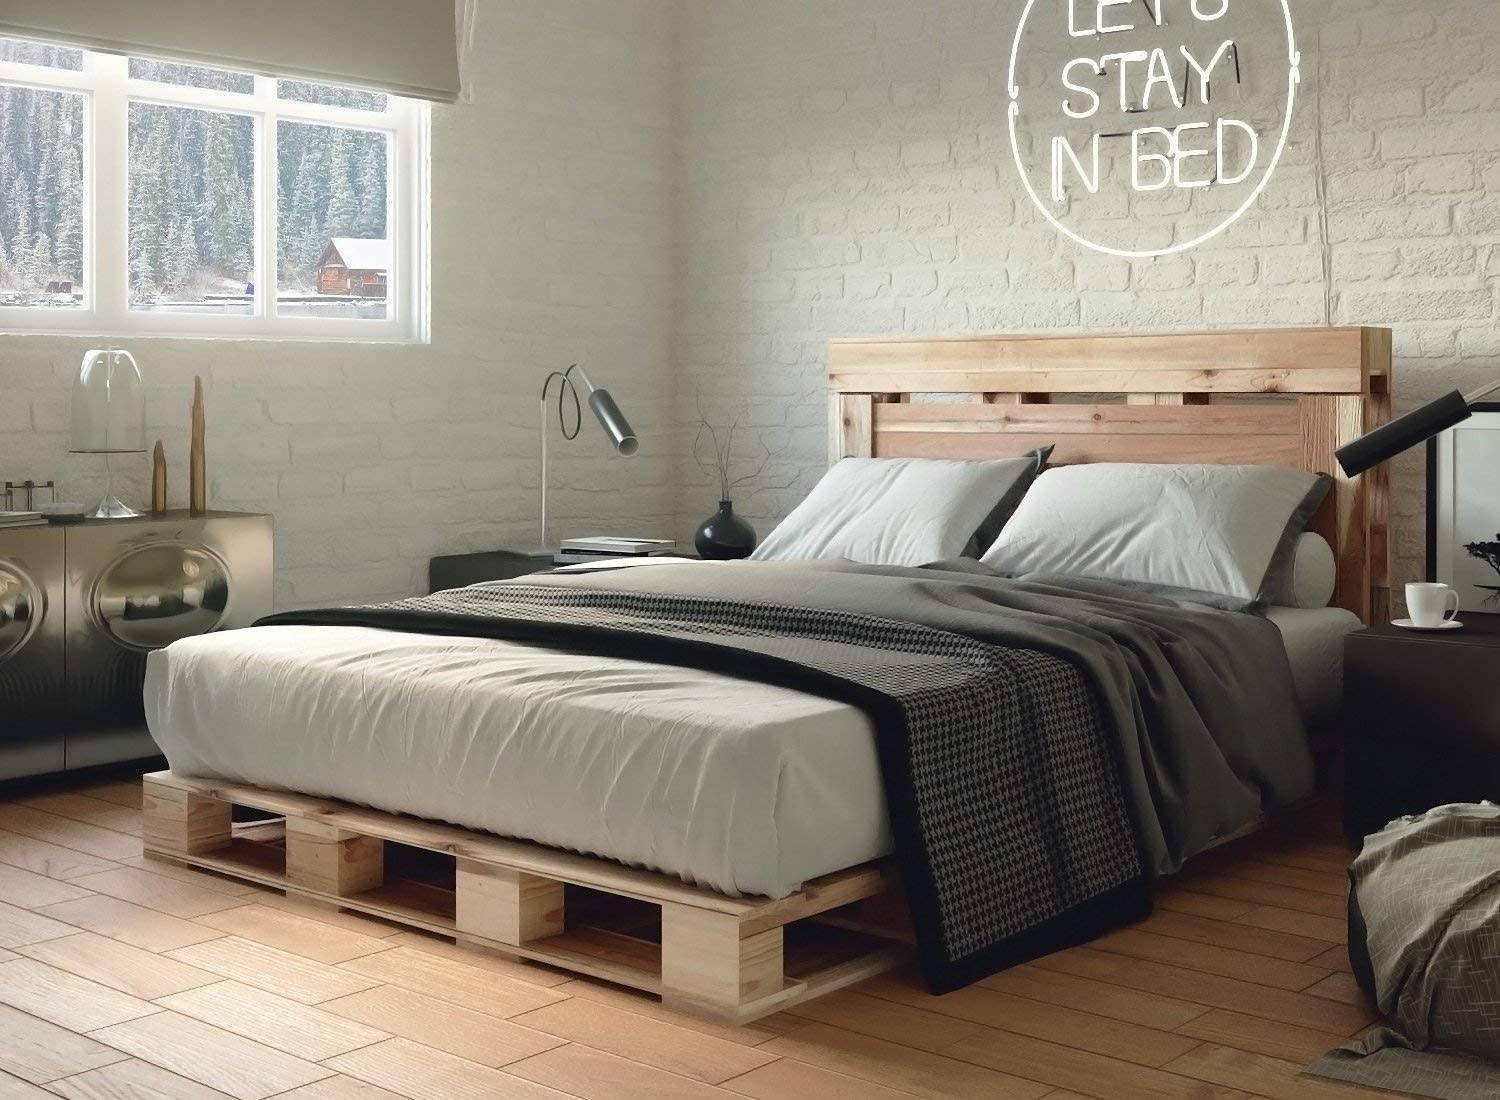 Modern Chic Feminine Bedroom Pallet Bed Natural Brick Wall Neon Sign Decor Fur Carpet